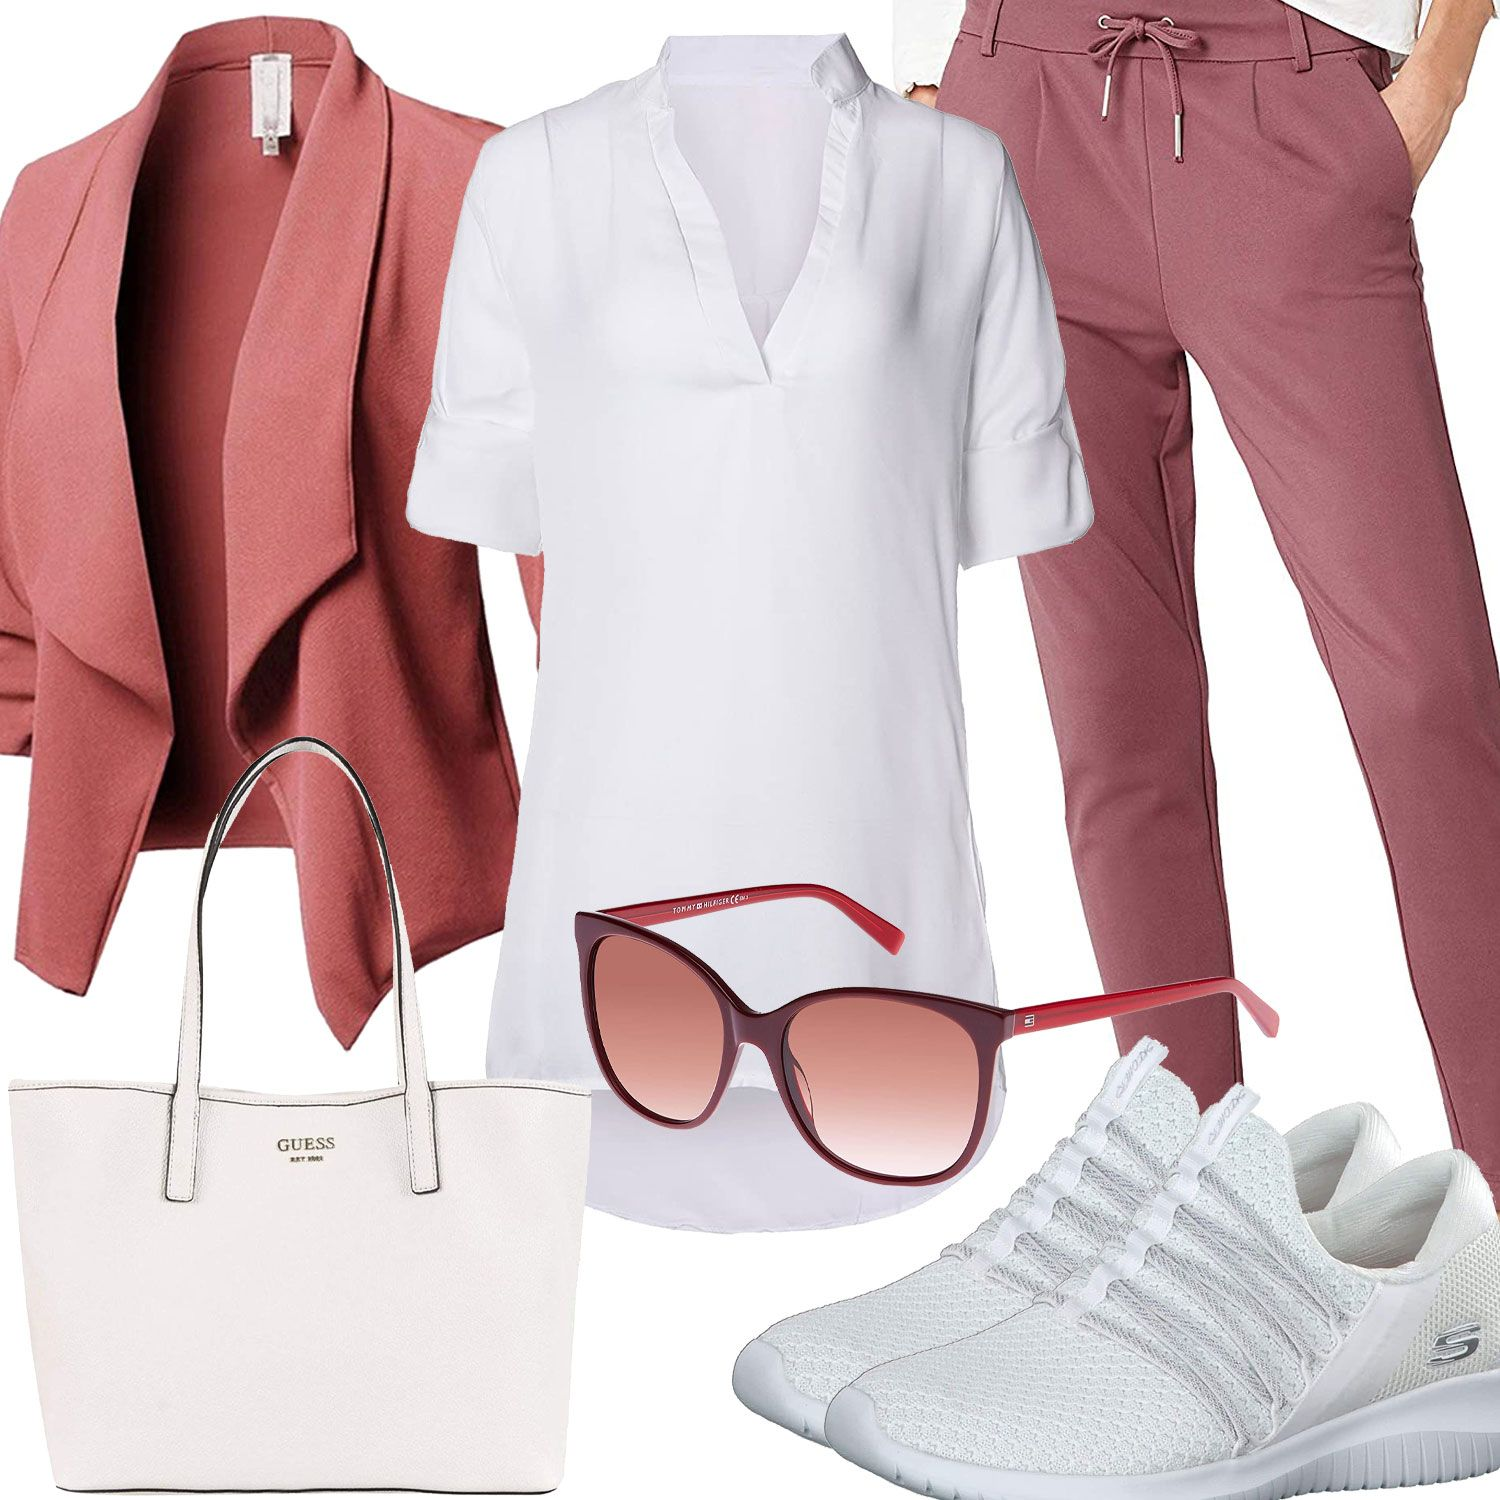 Weisses Damenoutfit Mit Altrosa Blazer Und Hose Outfits4you De In 2020 Outfit Lassiges Outfit Frauenoutfits